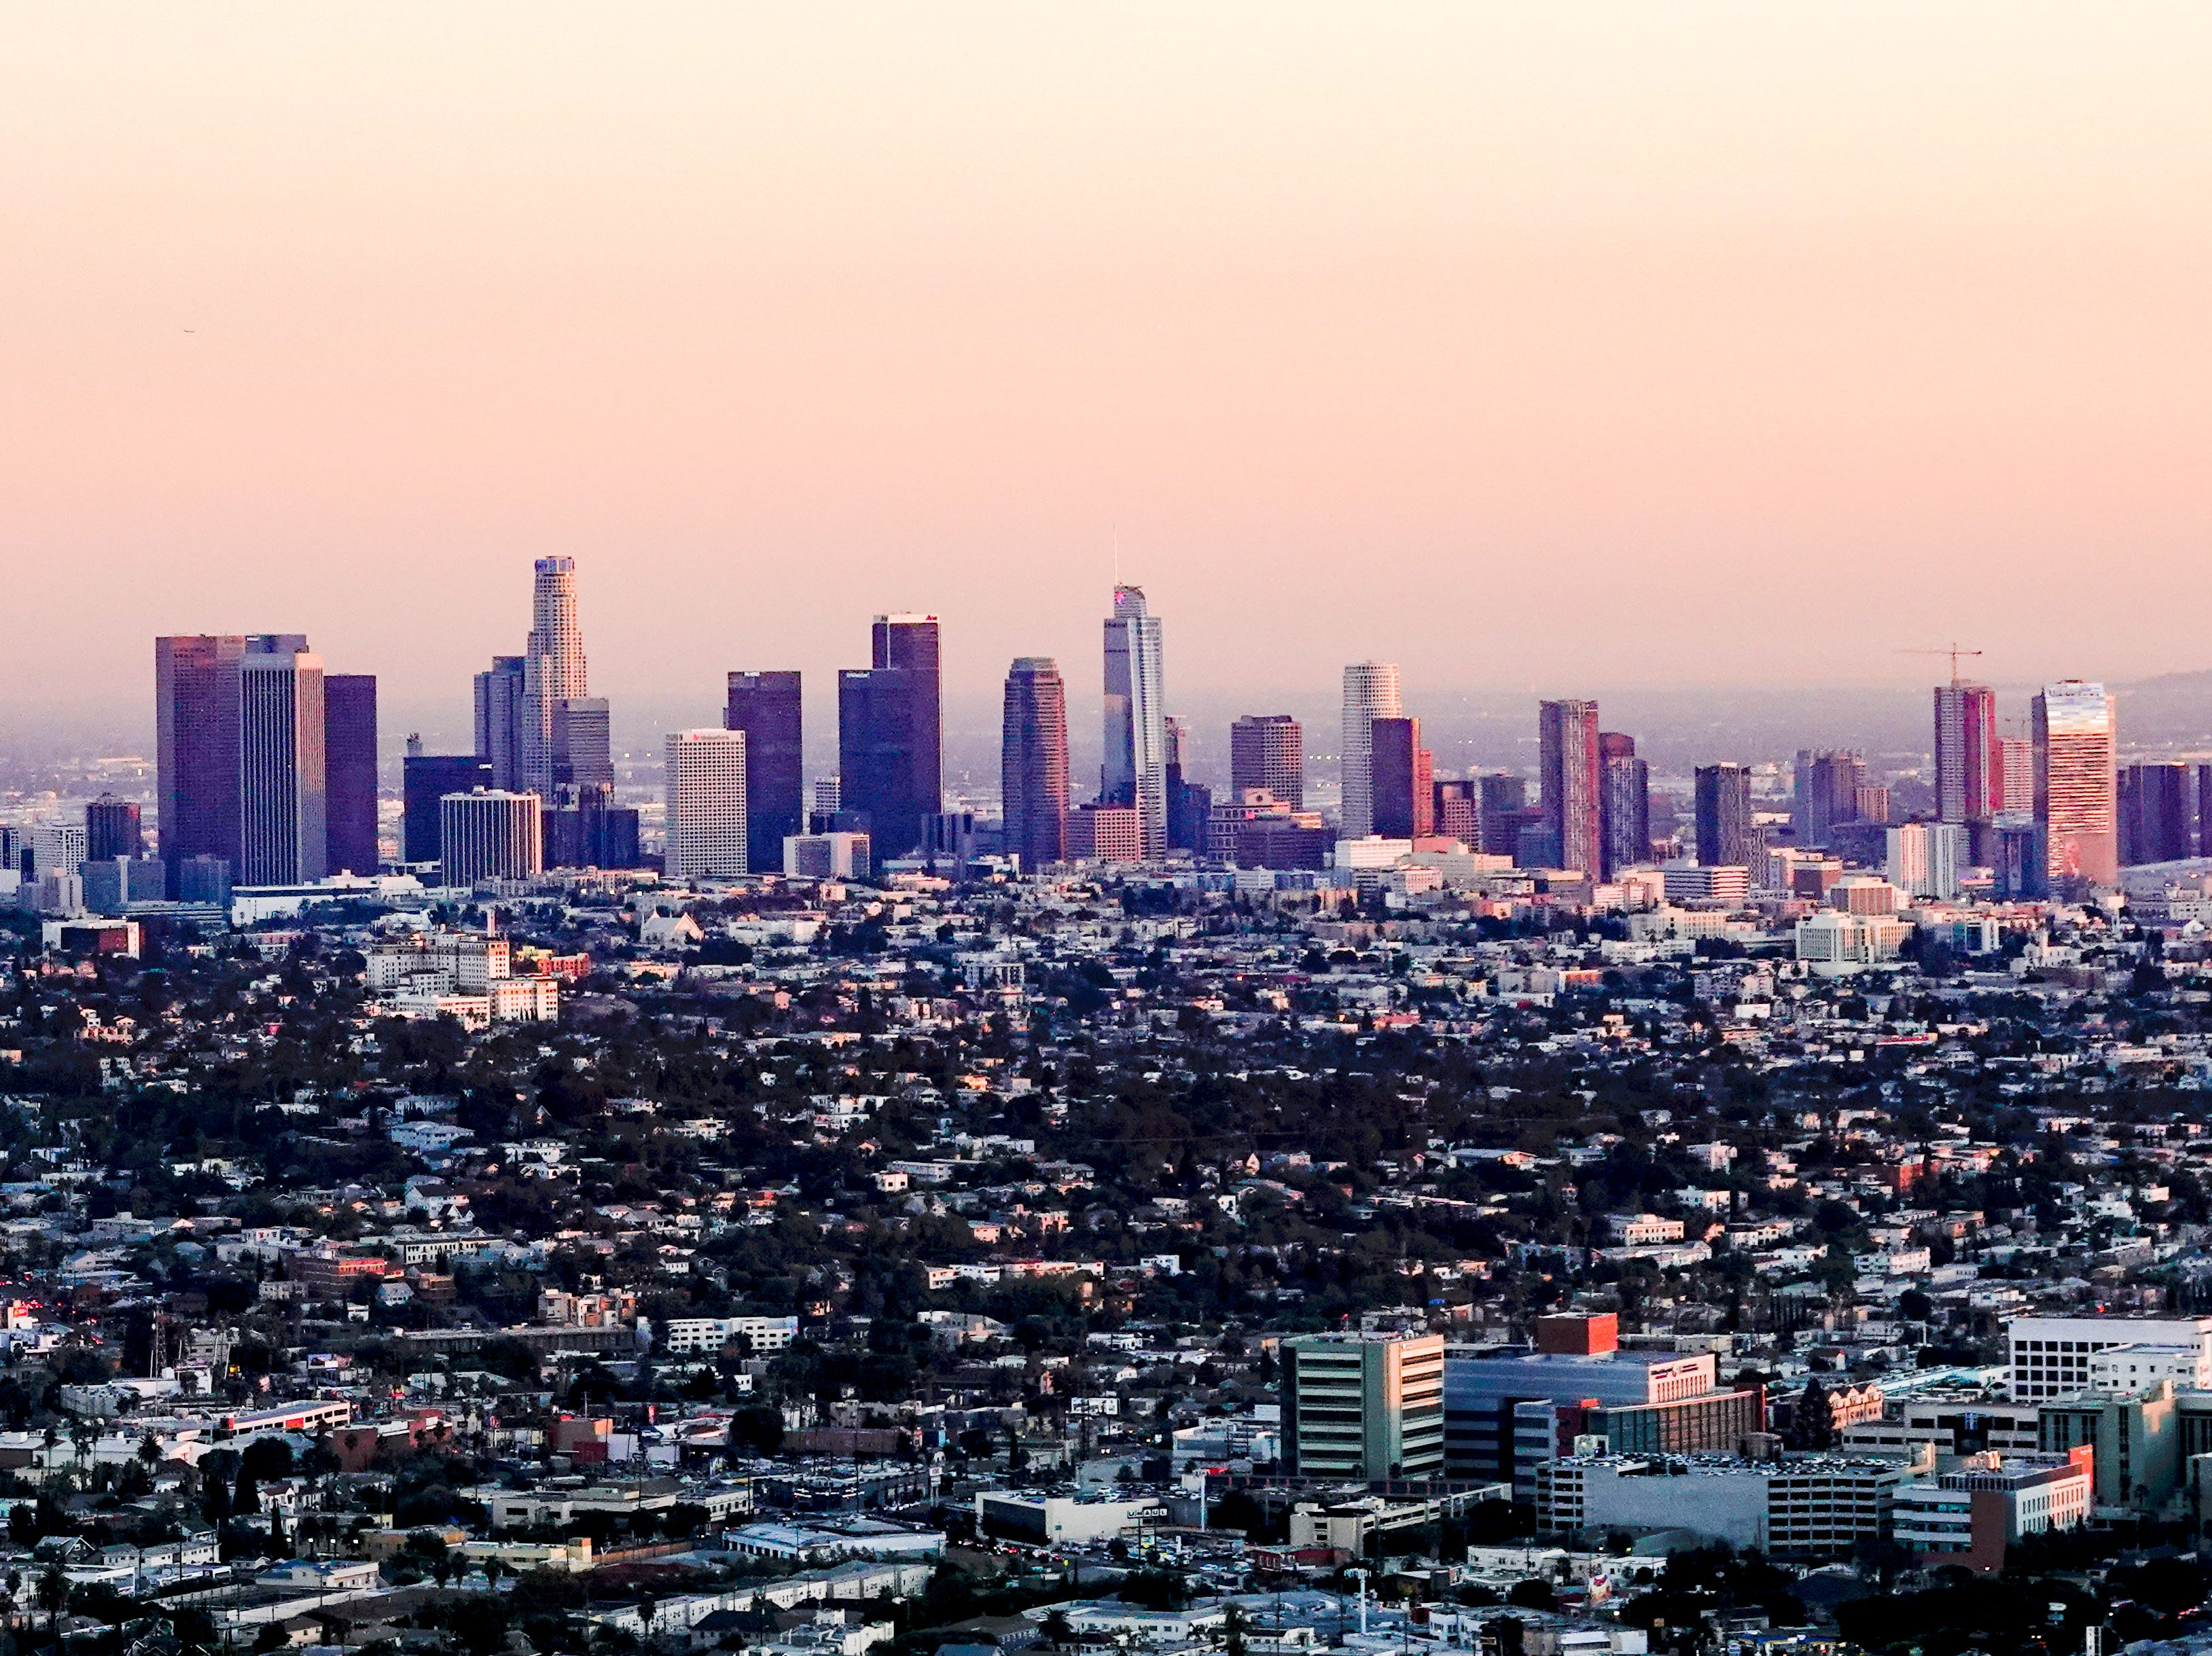 Los Angeles skyline, as seen from a deck at the Griffith Observatory